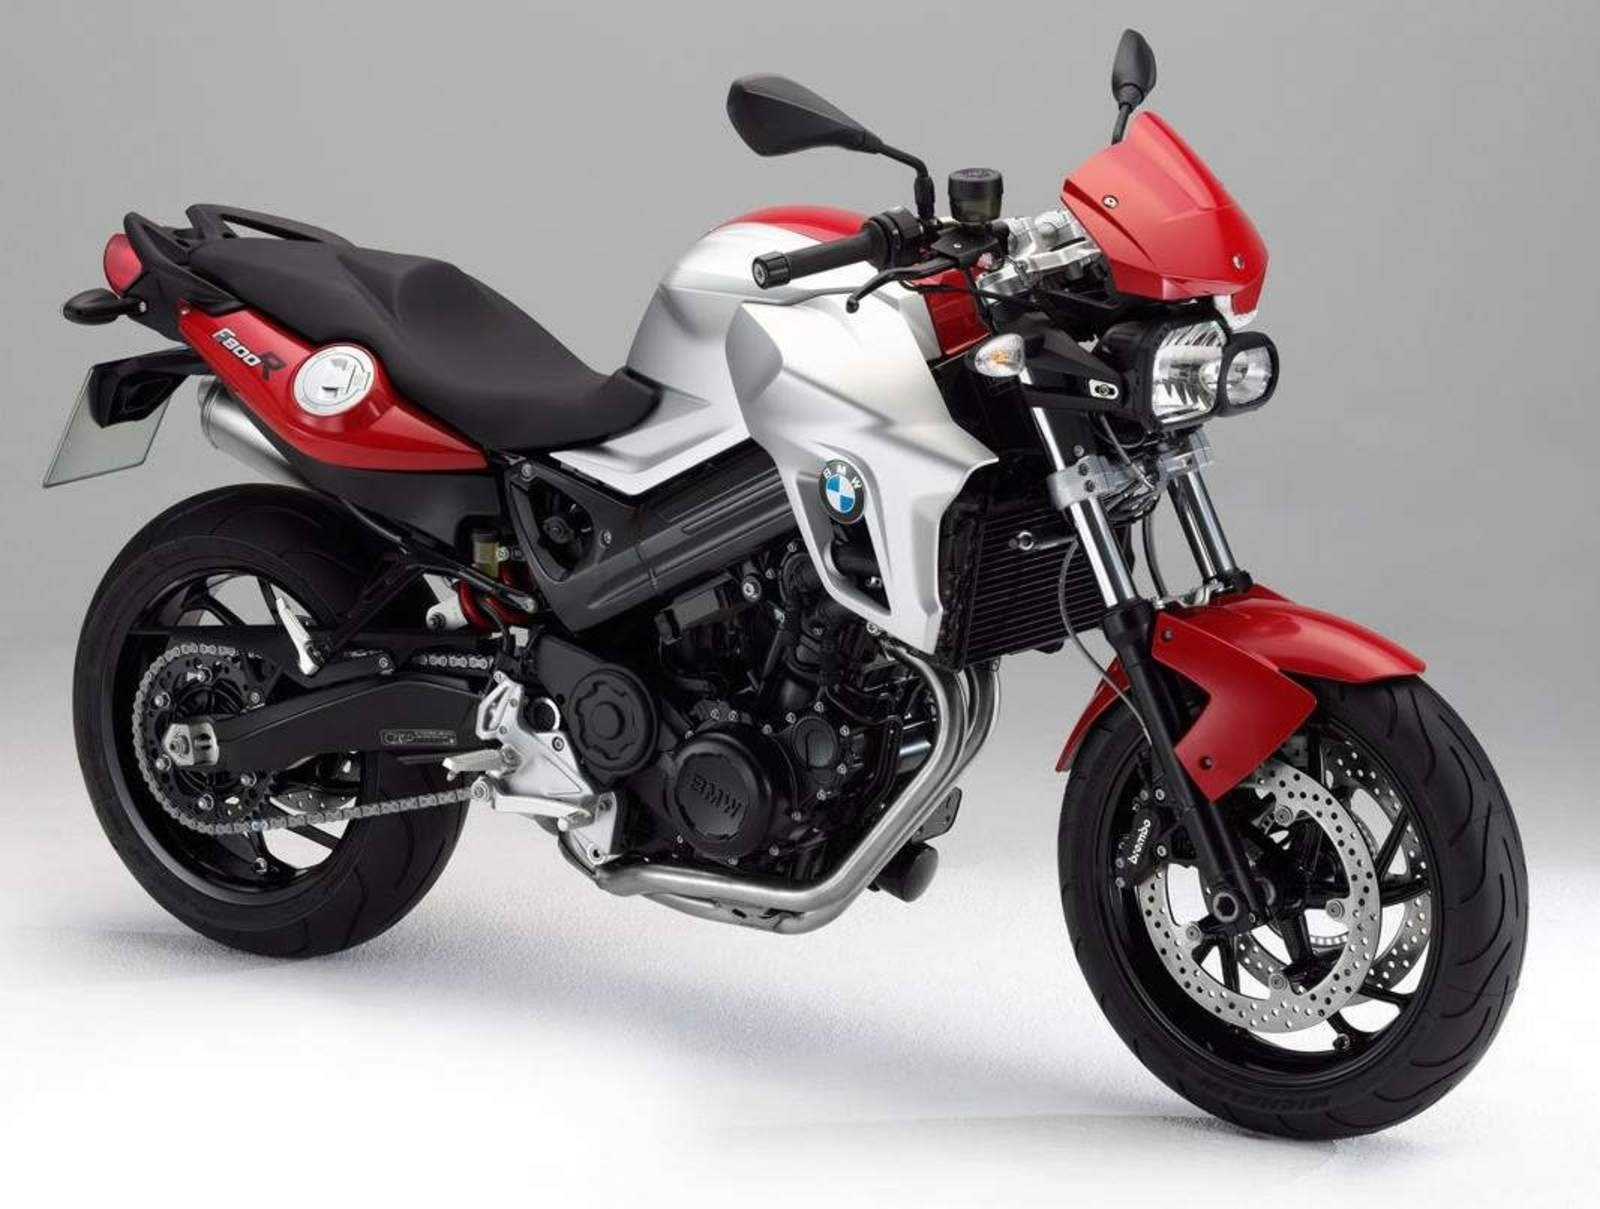 2012 BMW F800R Review - Gallery - Top Speed